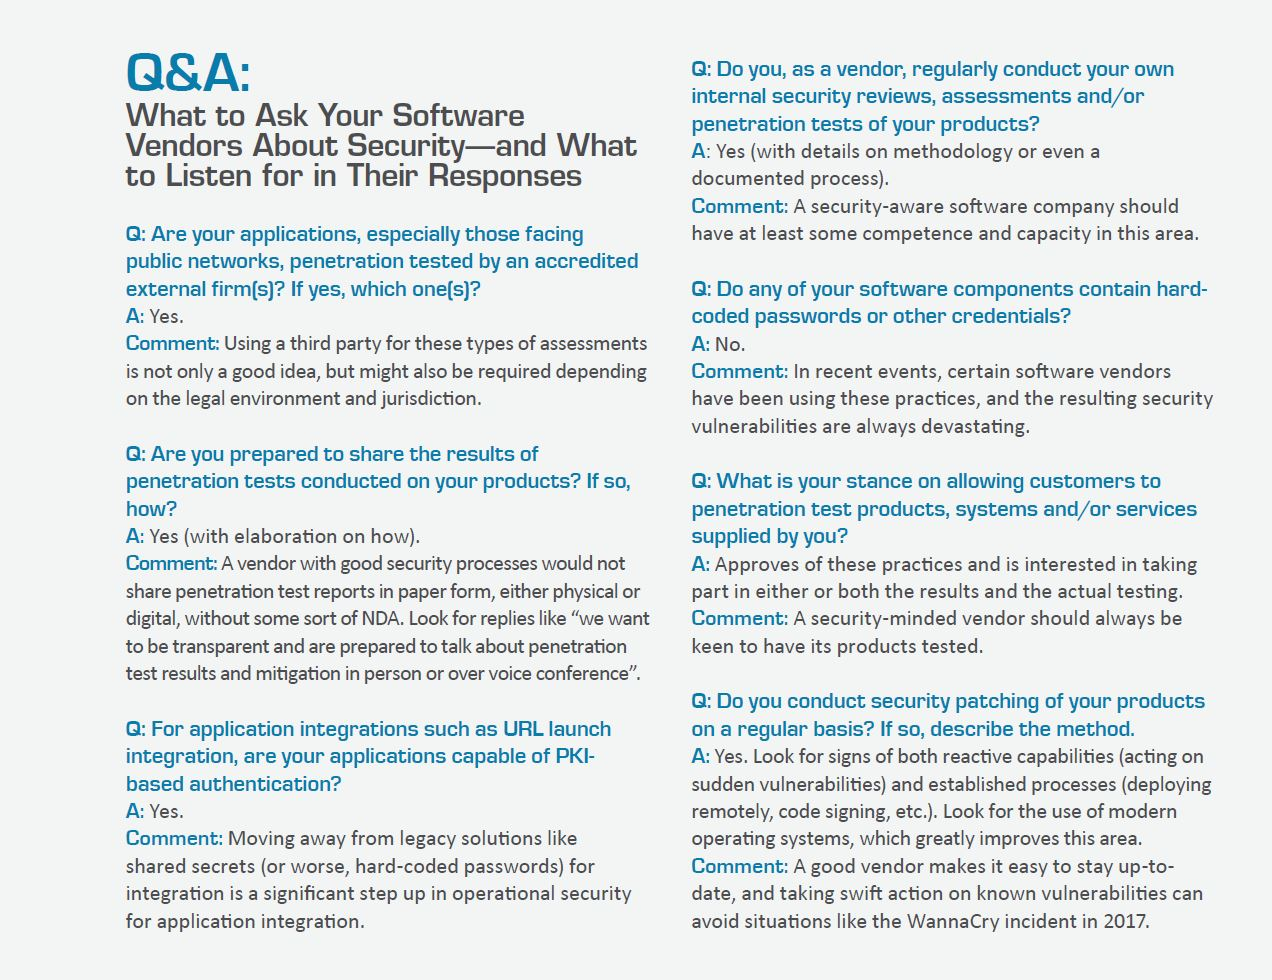 Security in requests for proposals in healthcare IT: What to ask your software vendors about security